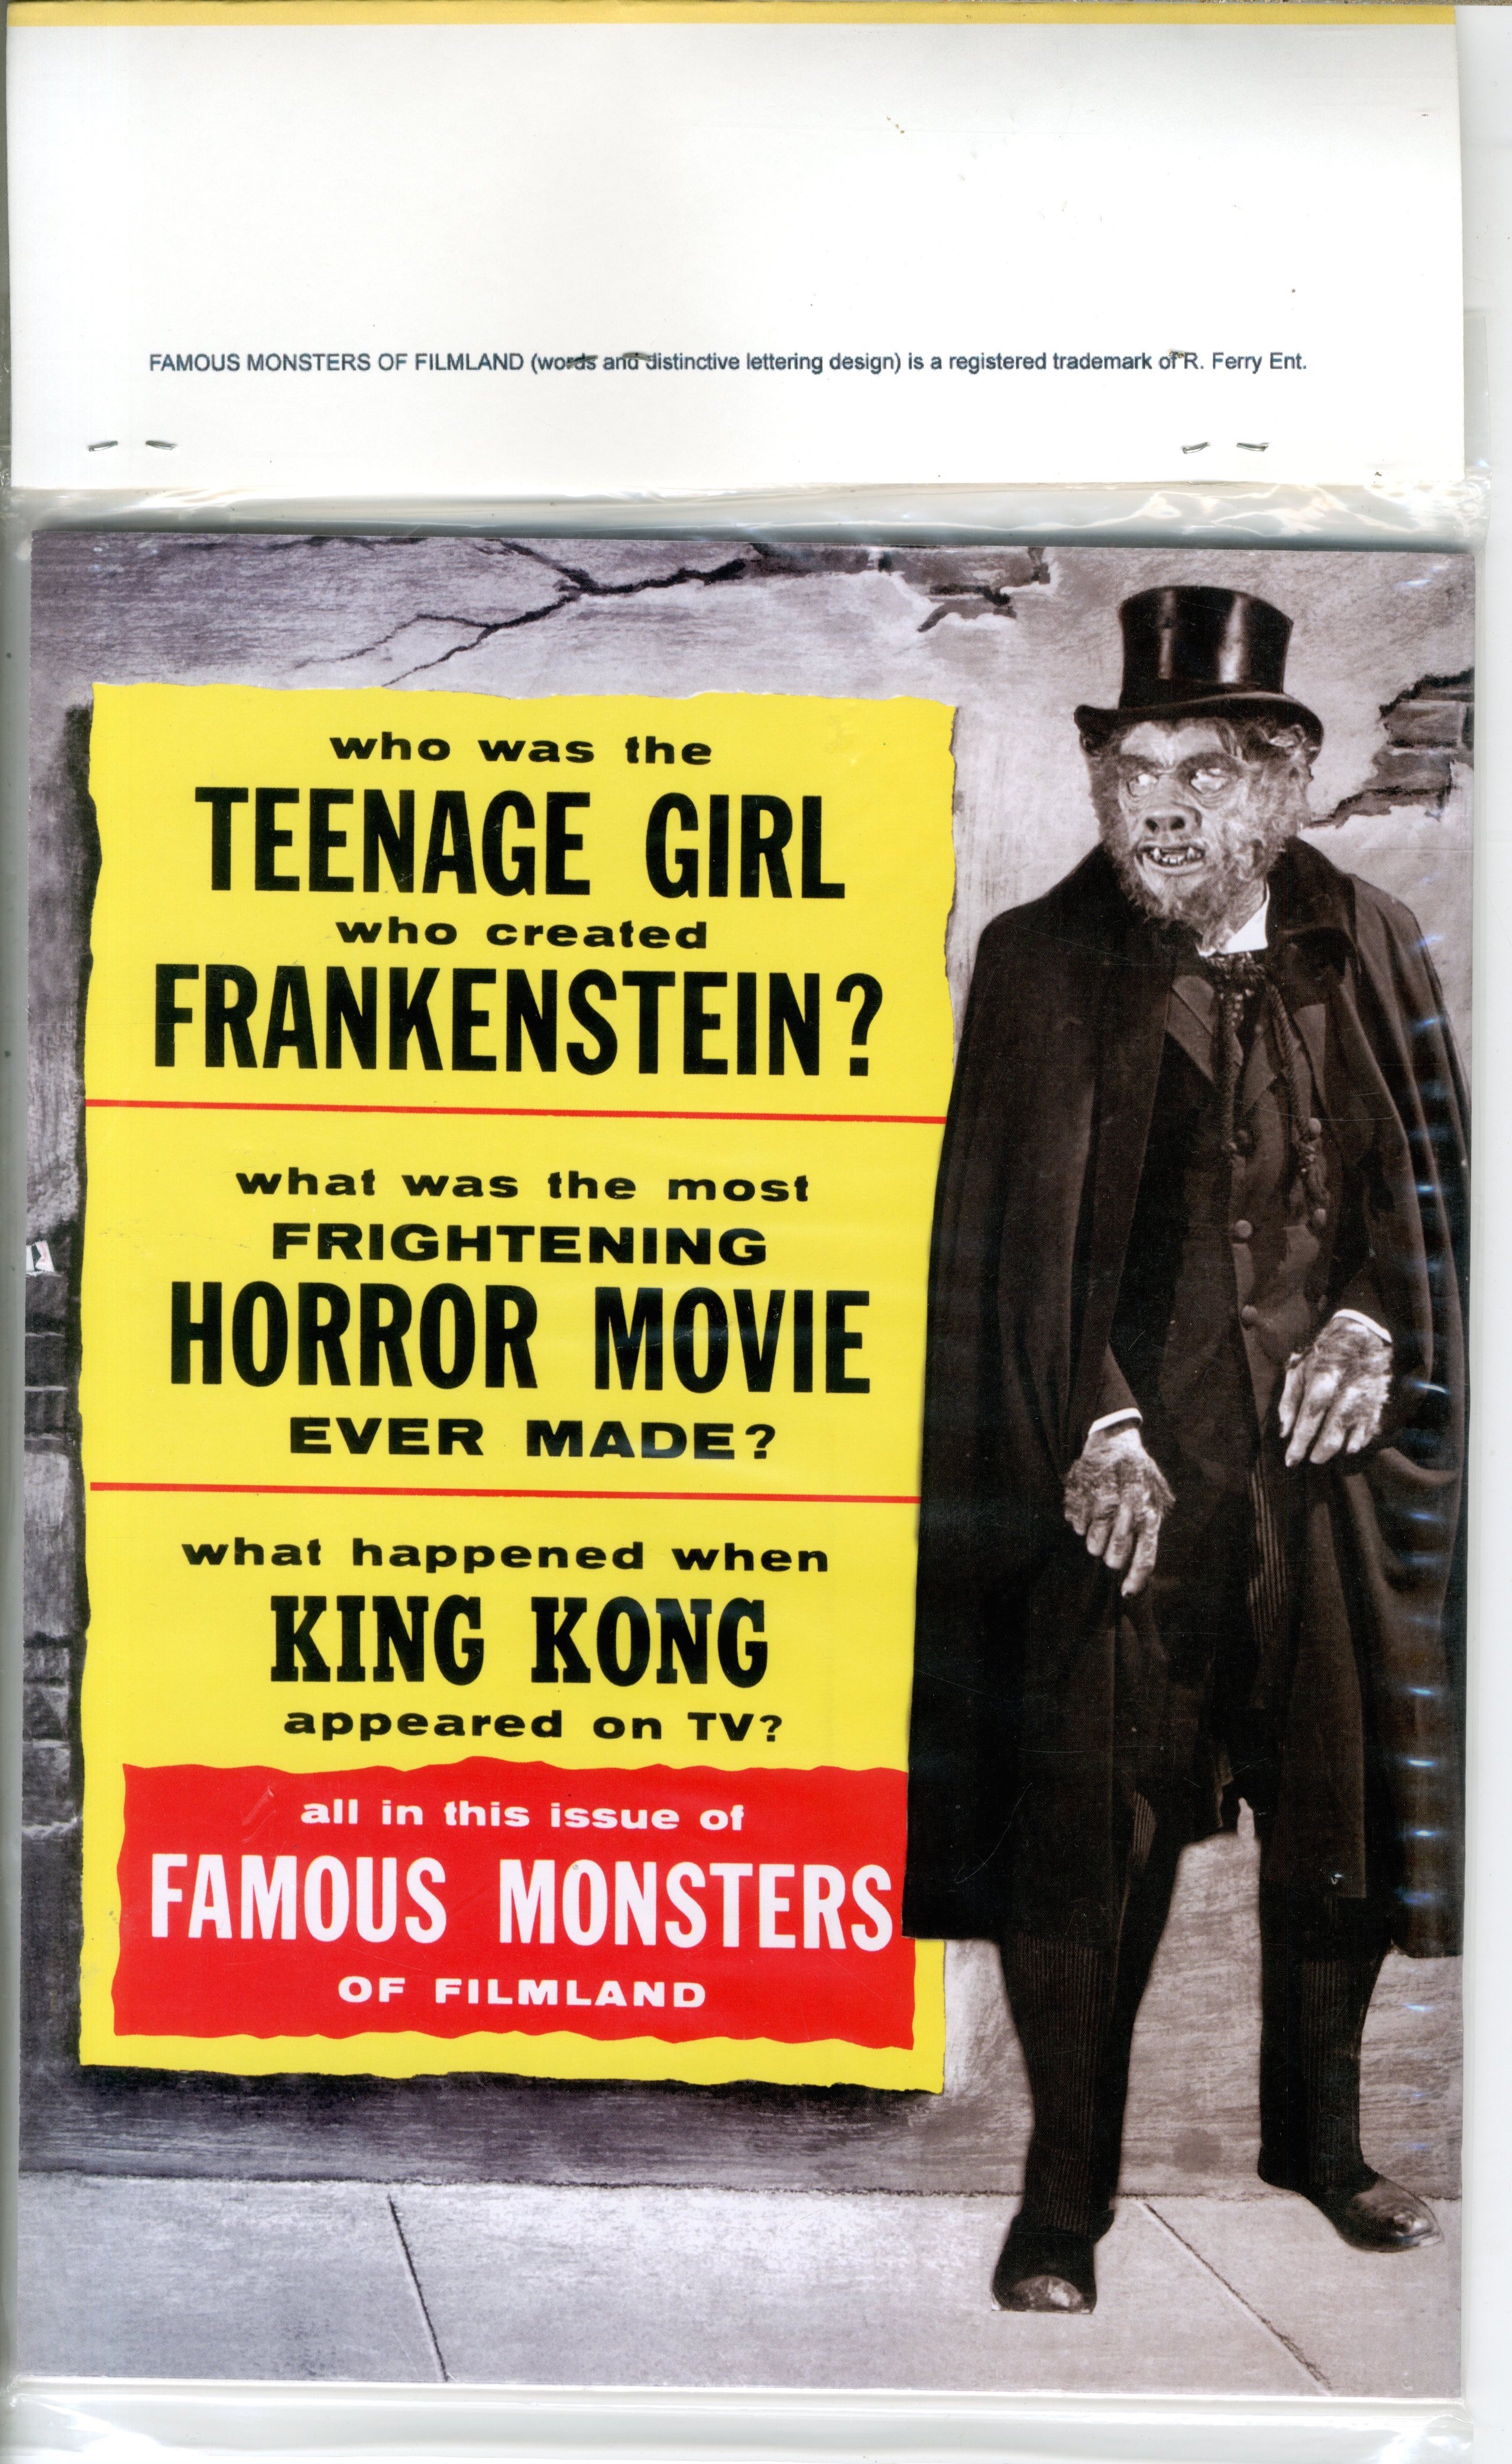 Famous Monsters Of Filmland - 17843